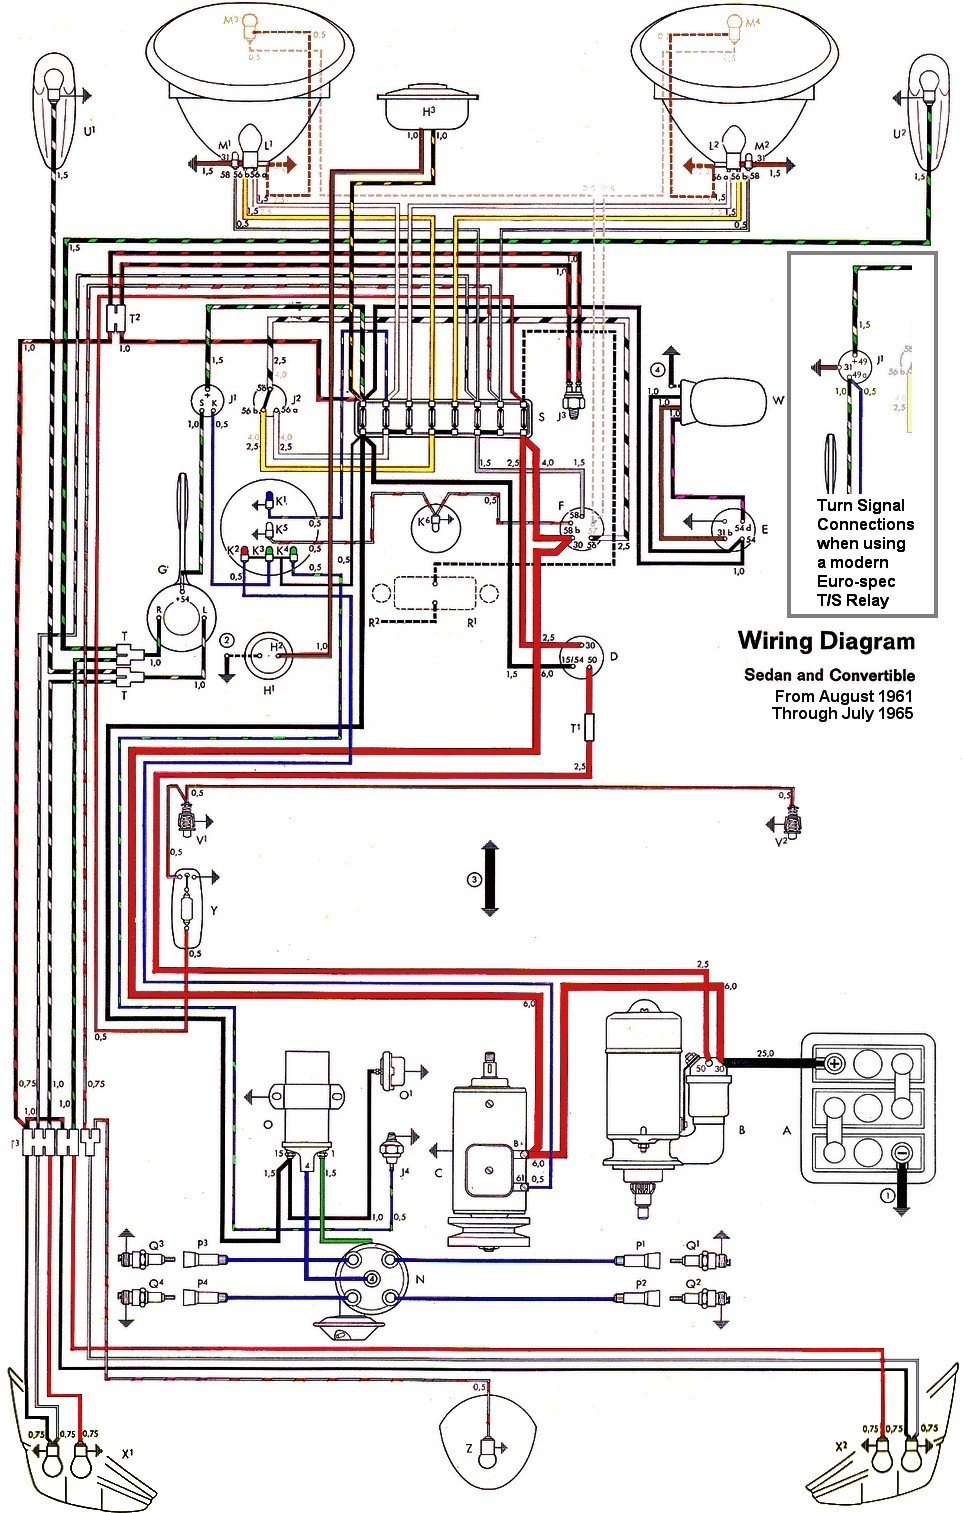 bug_62 65withinset thesamba com type 1 wiring diagrams vw beetle wiring diagram at cita.asia